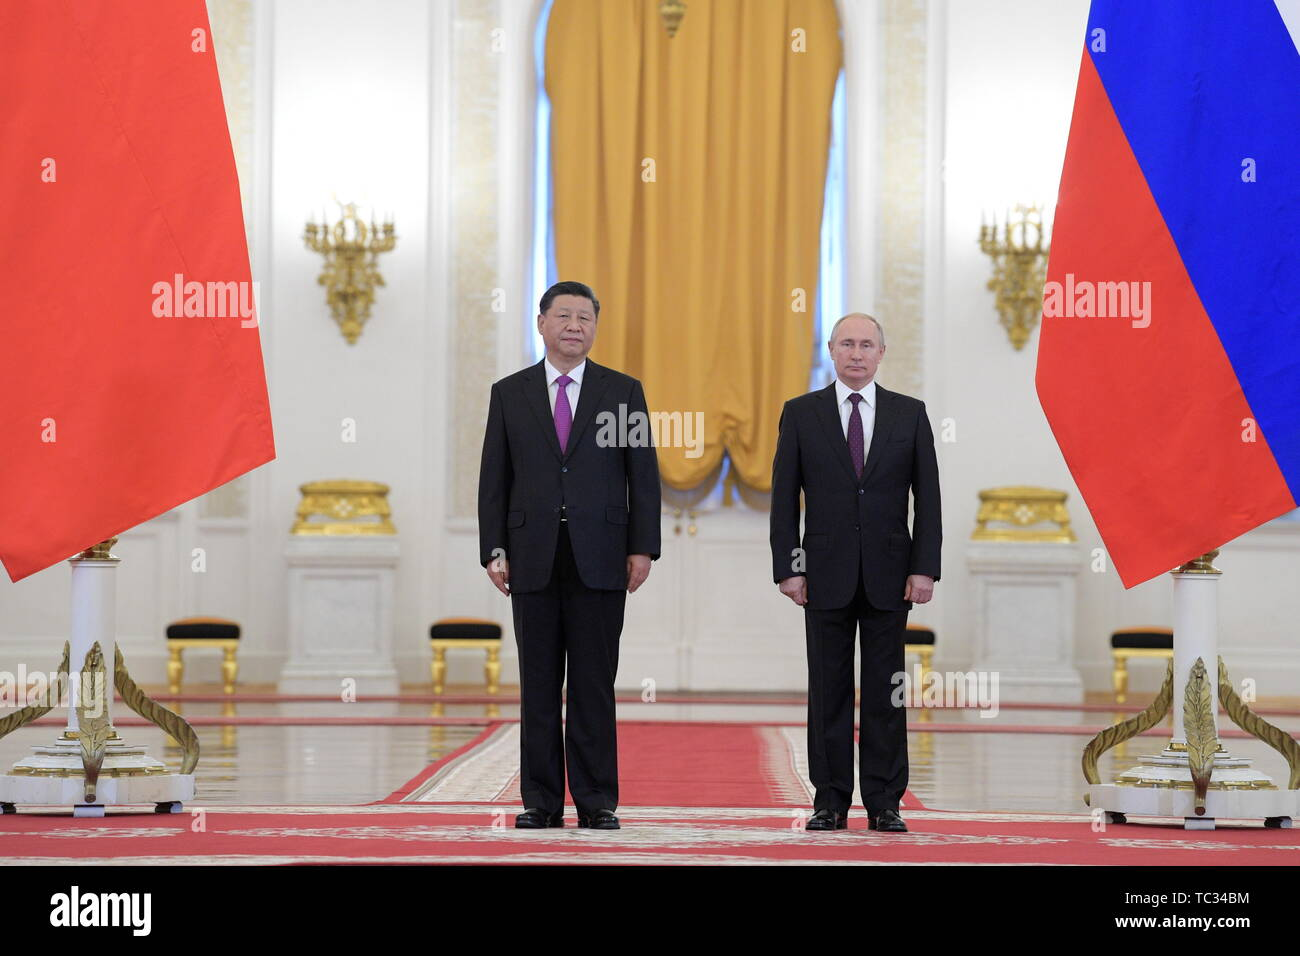 Moscow, Russia. 05th June, 2019. MOSCOW, RUSSIA - JUNE 5, 2019: China's President Xi Jinping (L) and Russia's President Vladimir Putin during a meeting in the Moscow Kremlin; the Chinese leader is on a three-day state visit to Russia. Alexei Druzhinin/Russian Presidential Press and Information Office/TASS Credit: ITAR-TASS News Agency/Alamy Live News - Stock Image